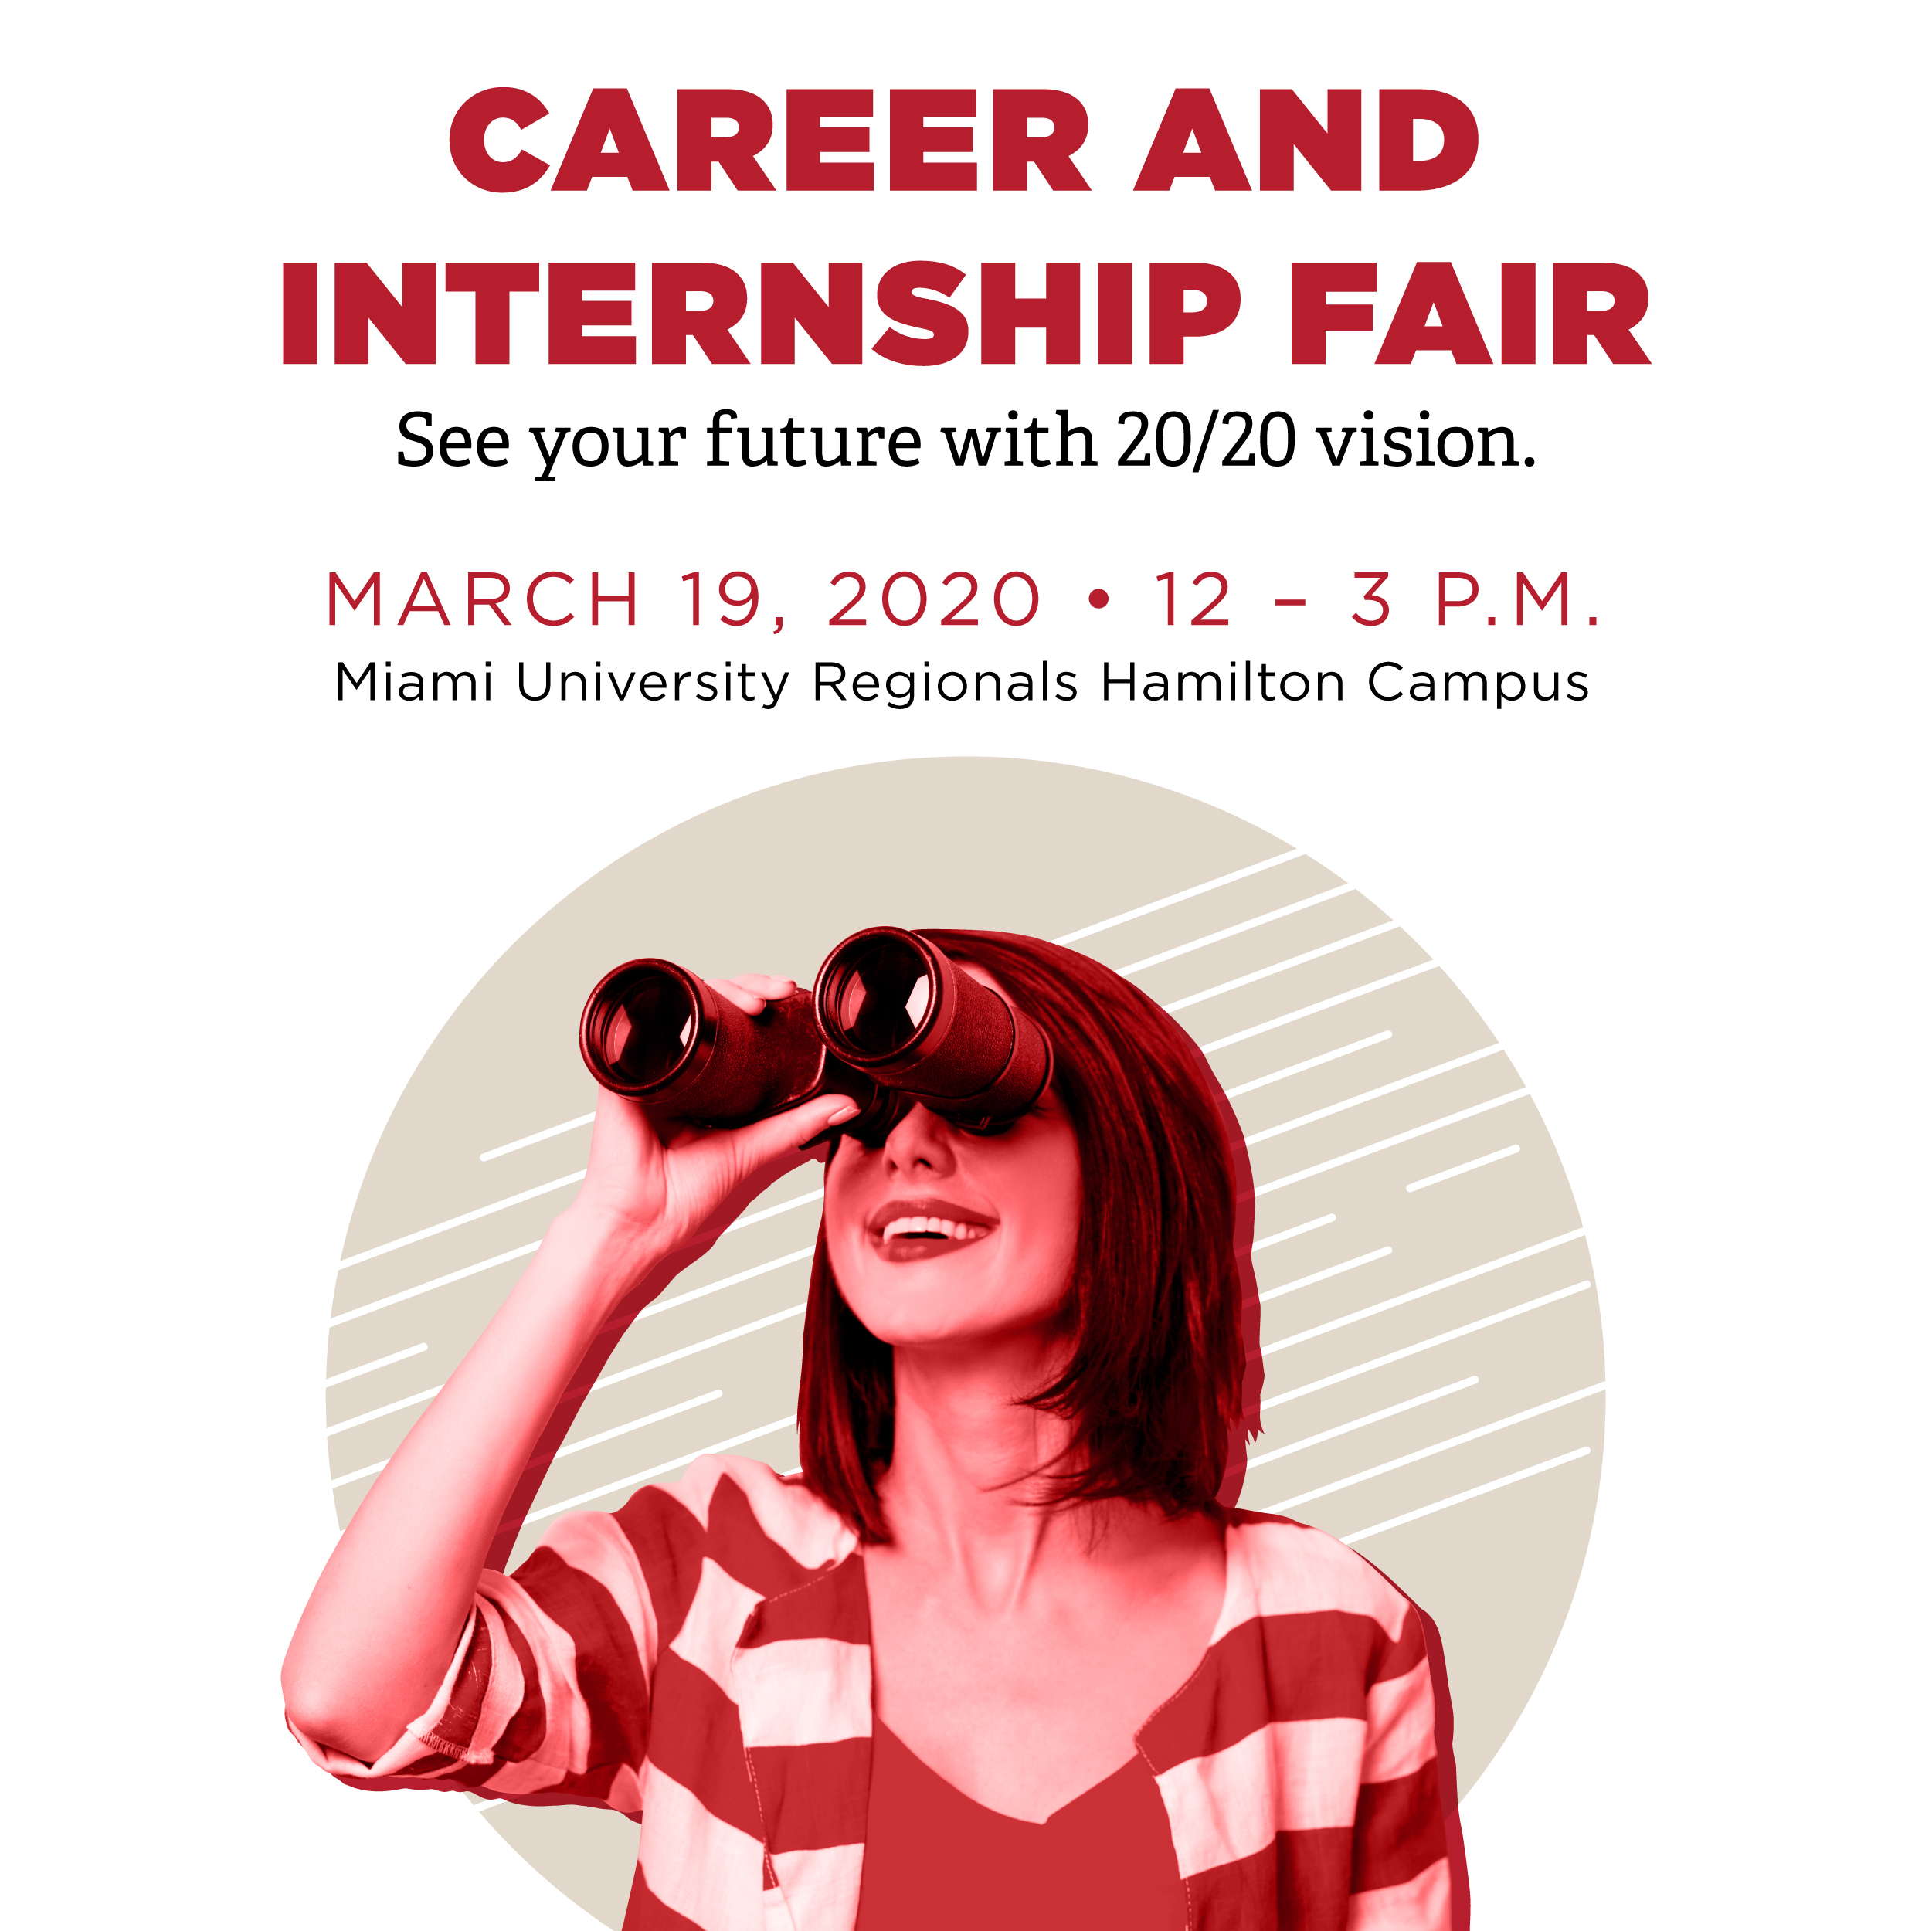 Career and Internship Fair. See your future with 20/20 vision. March 19, 2020 12 - 3 pm. Miami University Regionals Hamilton Campus. A female holding binoculars.